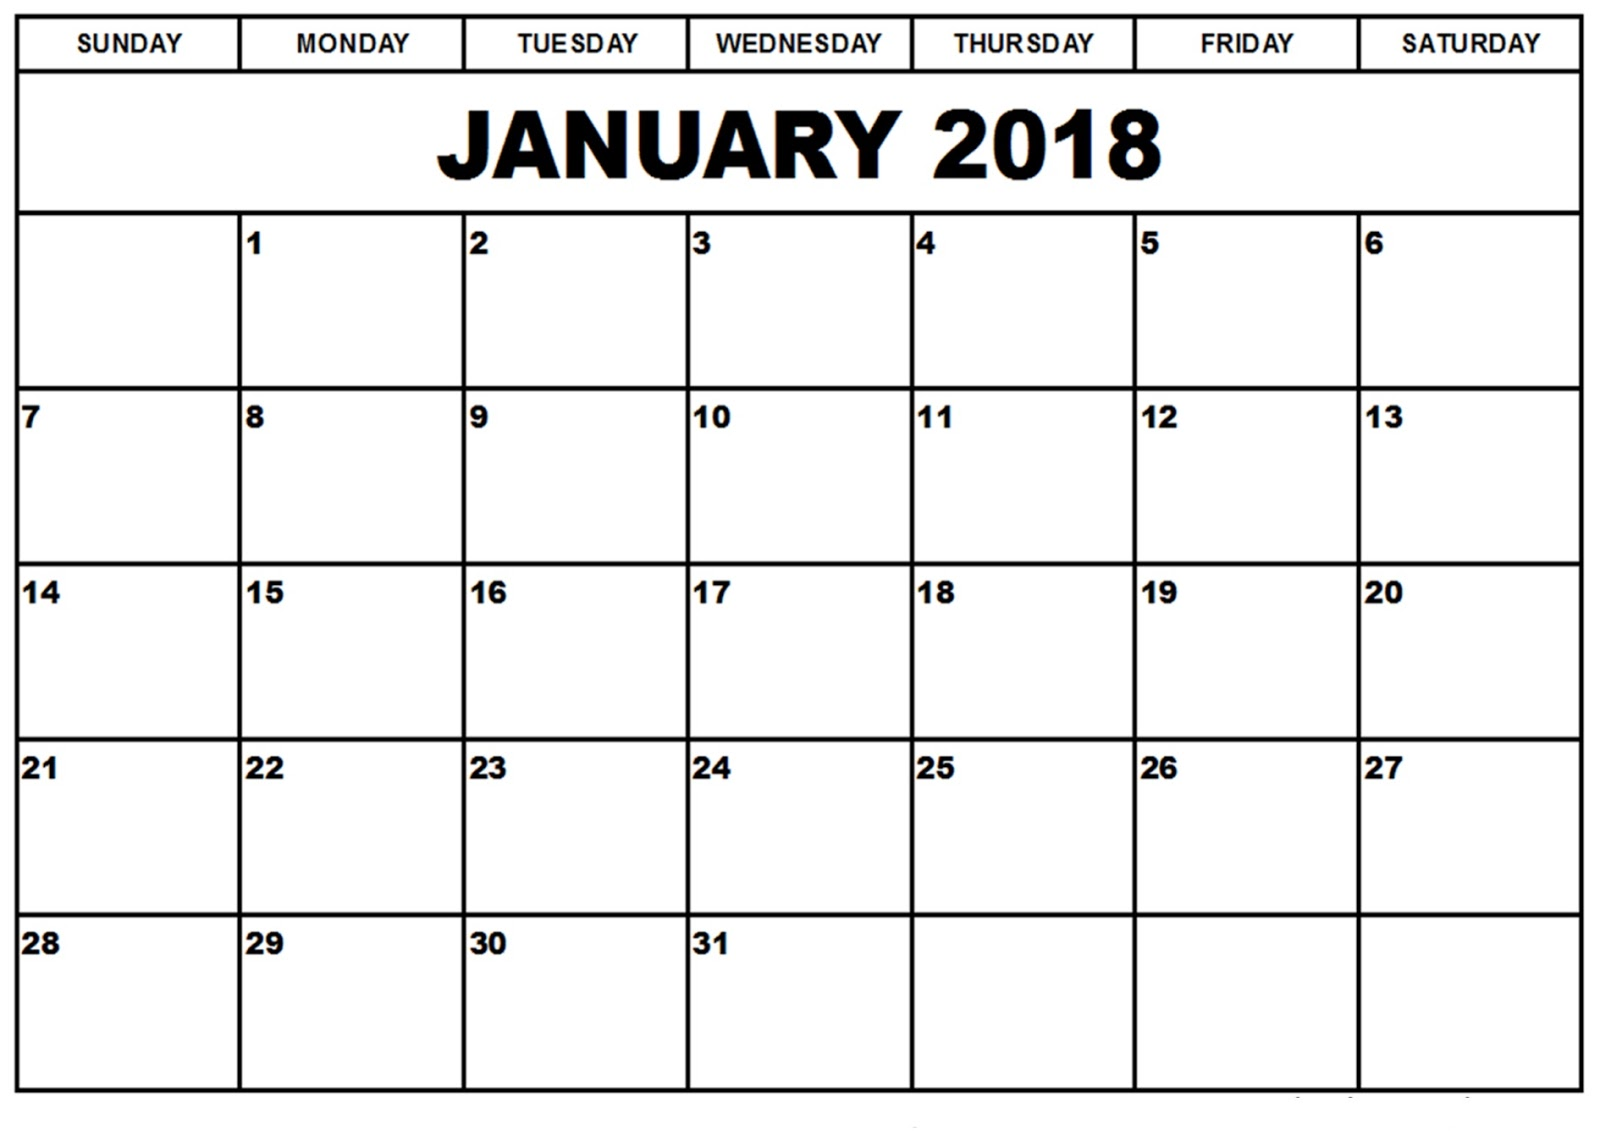 january 2018 printable calendar january 2018 printable templates january 2018 calendar templates january